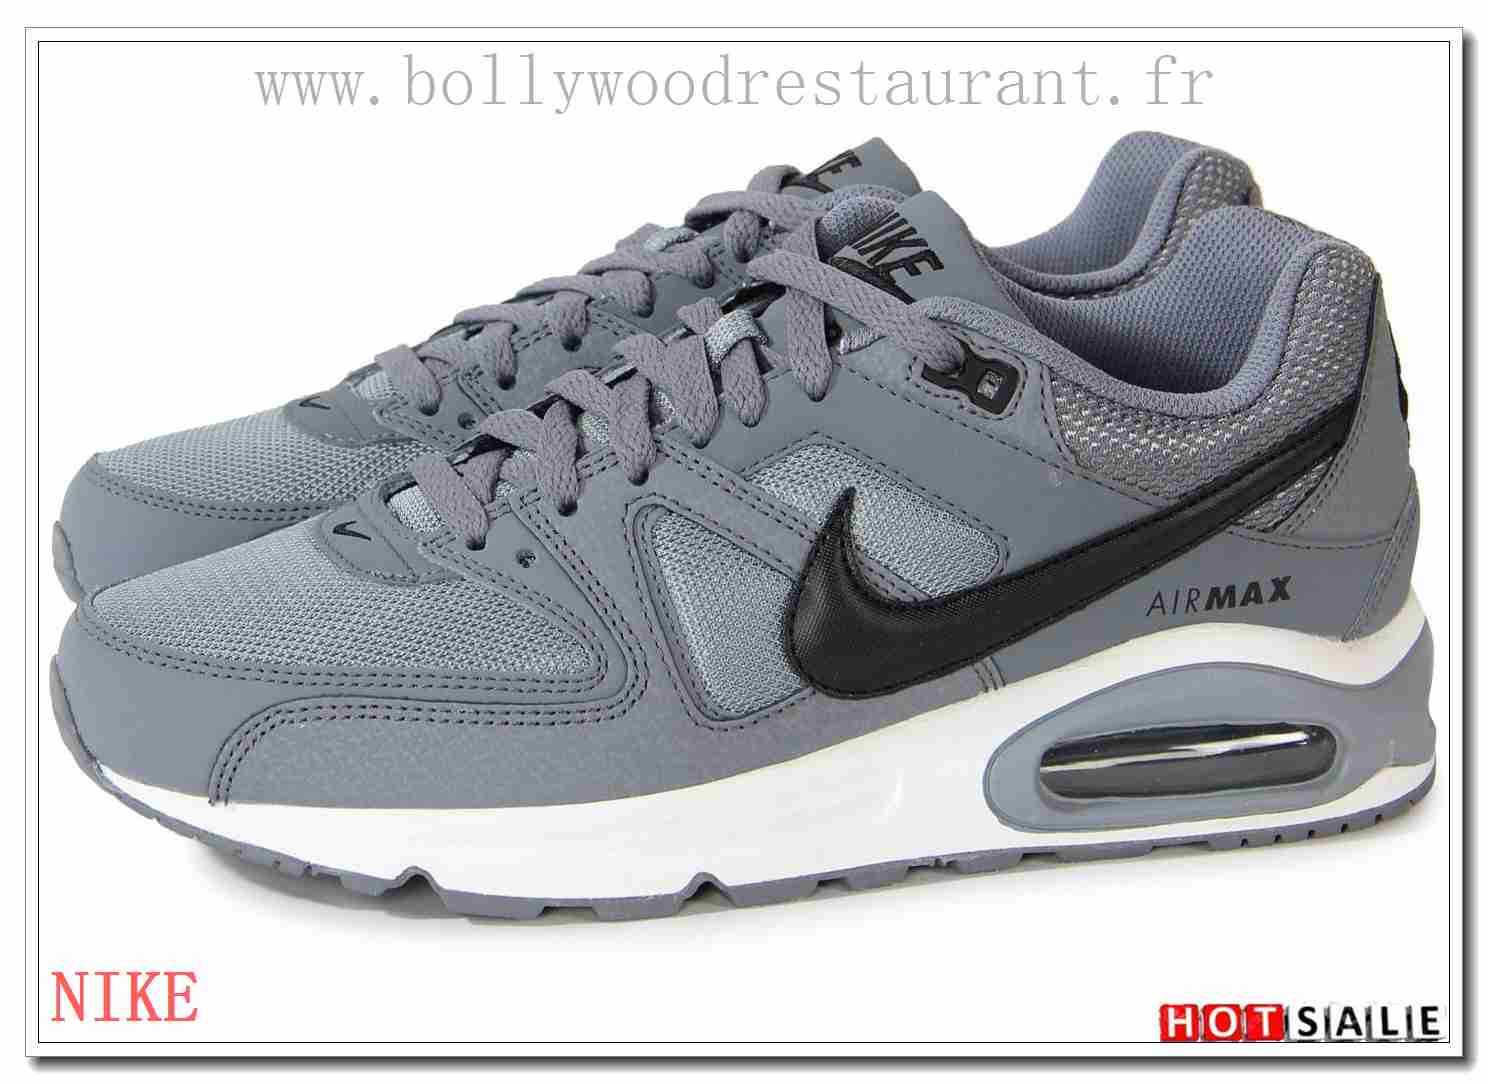 half off f8677 4fb8a YL0536 L amour 2018 Nouveau style Nike Air Max Command - Homme Chaussures -  Promotions